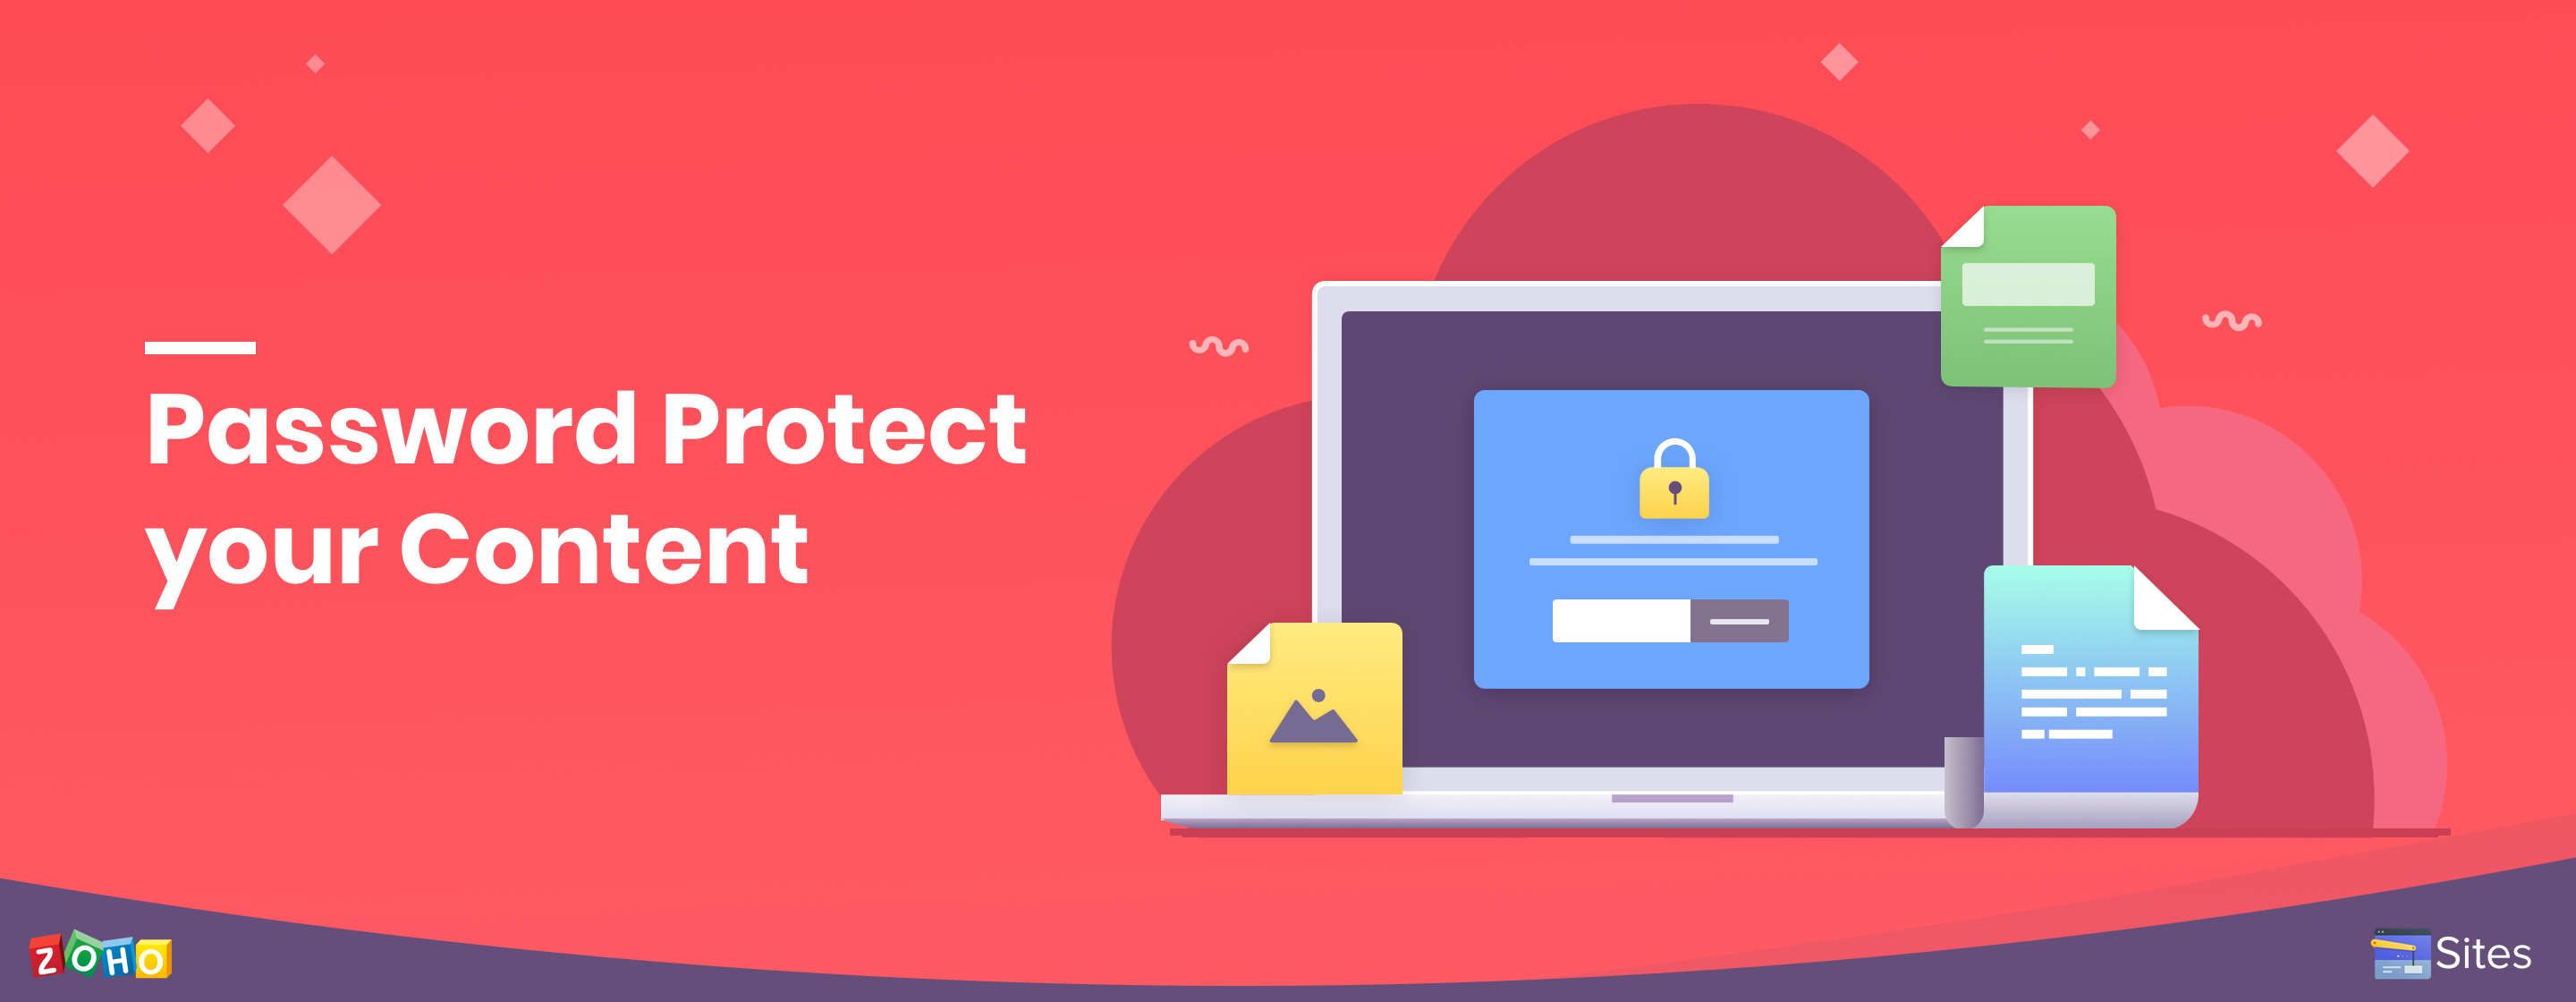 Secure your content withPasswordProtection